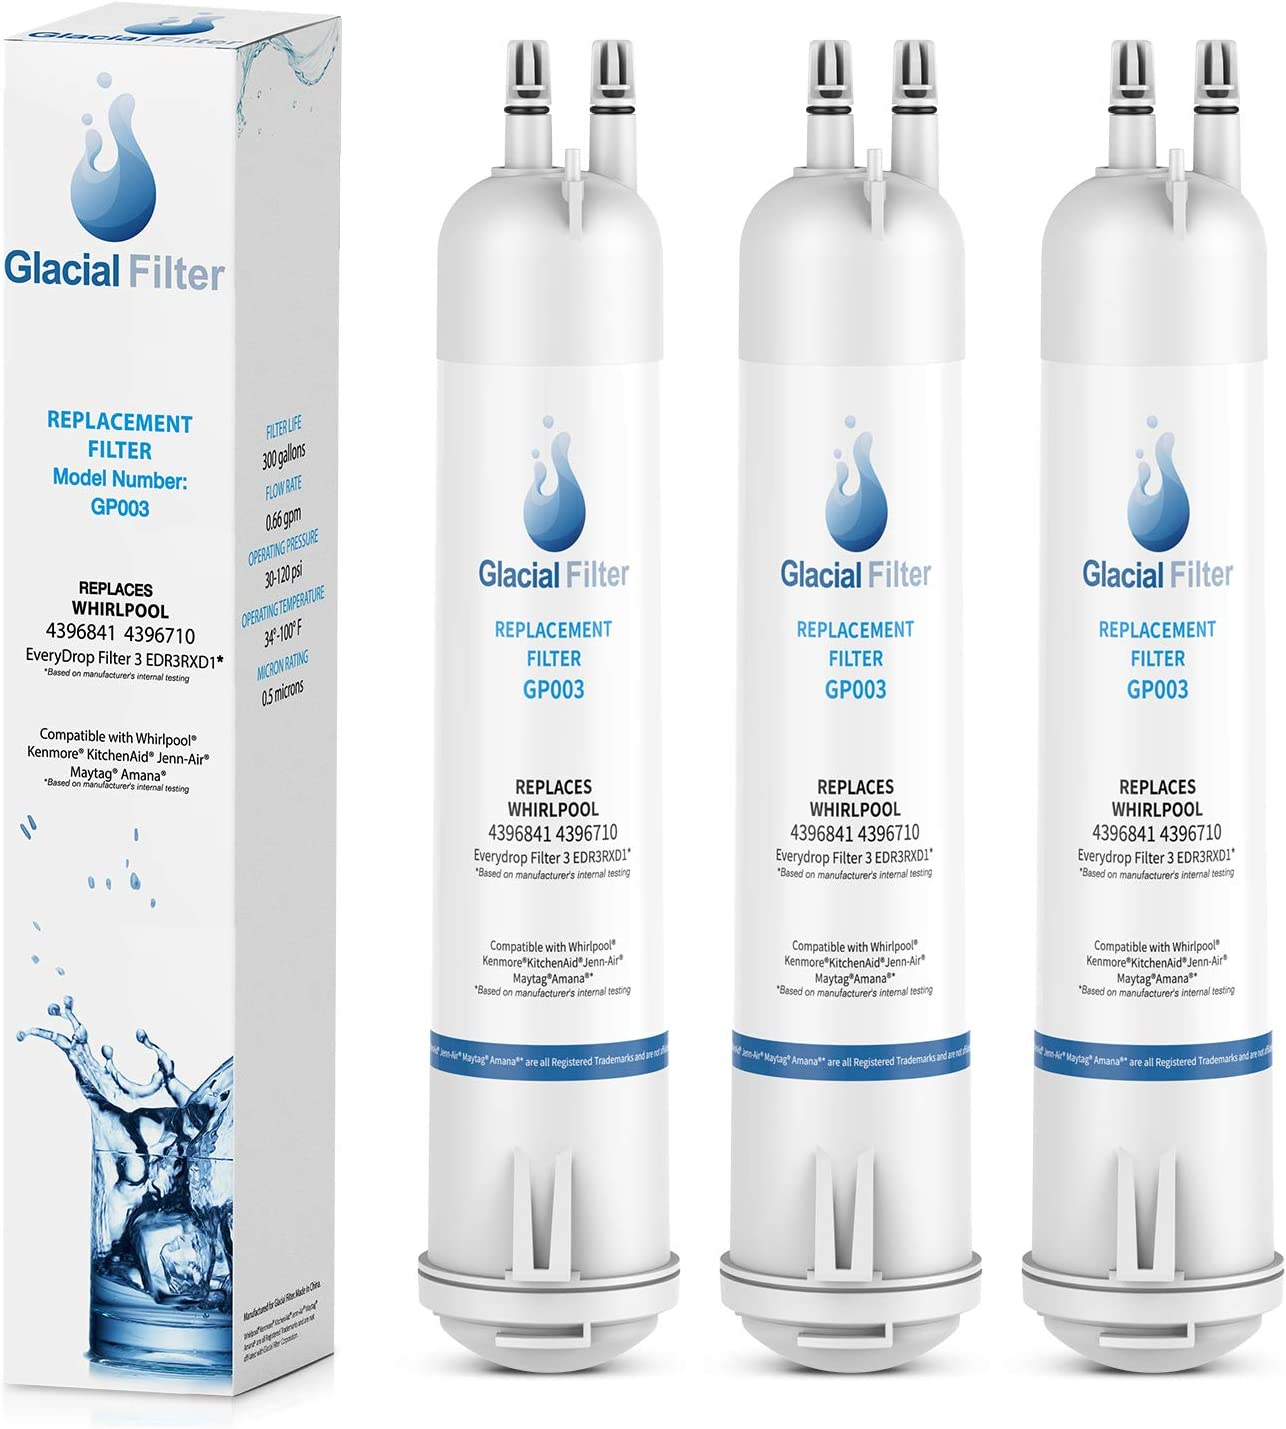 Glacial Filter 4396841 EDR3RXD1 Water Filter Replacement, Compatible with 4396710 Refrigerator Cap Water Filter 3 Kenmore 9083, 9030 Water Filter - 3pack